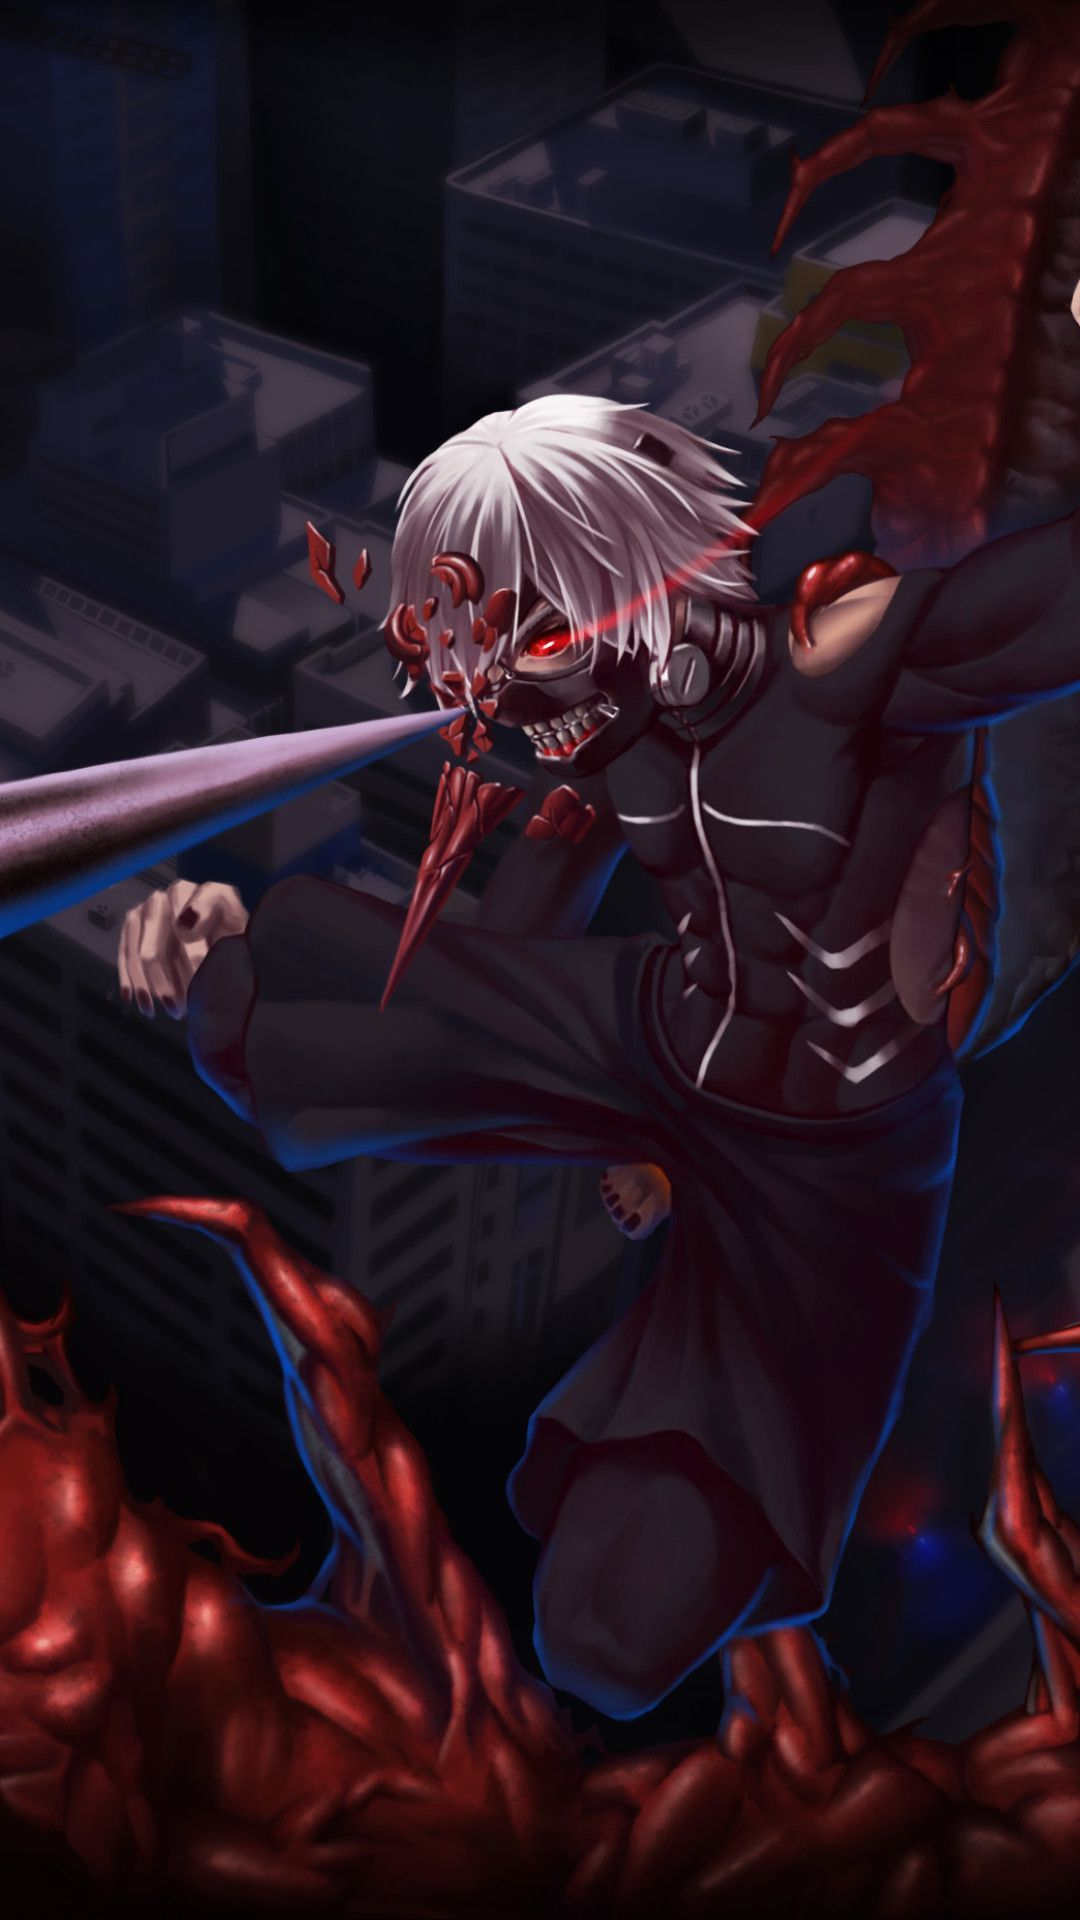 1080x1920 Tokyo Ghoul Iphone Papeis De Parede 76 Imagens Tokyo Ghoul Wallpapers Tokyo Ghoul Tokyo Ghoul Cosplay